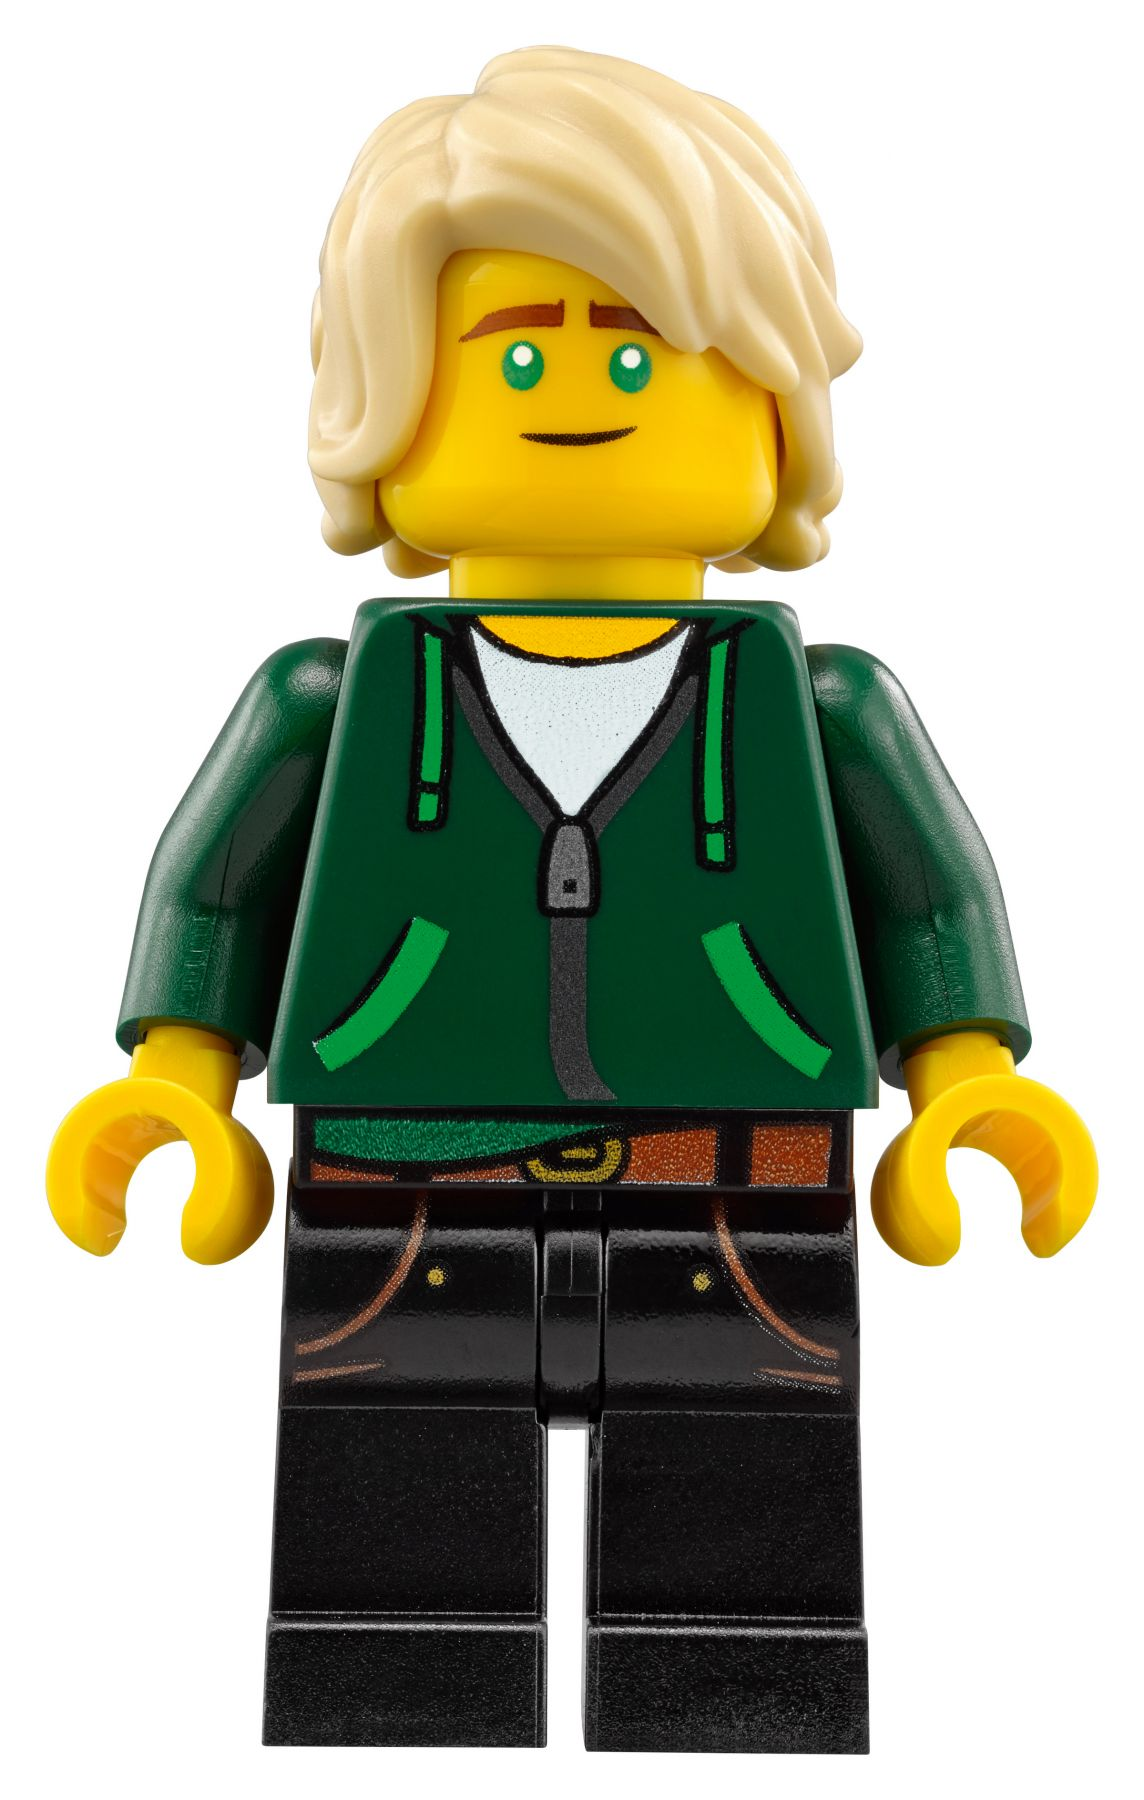 LEGO The LEGO Ninjago Movie 70620 Ninjago City LEGO_70620_alt30.jpg